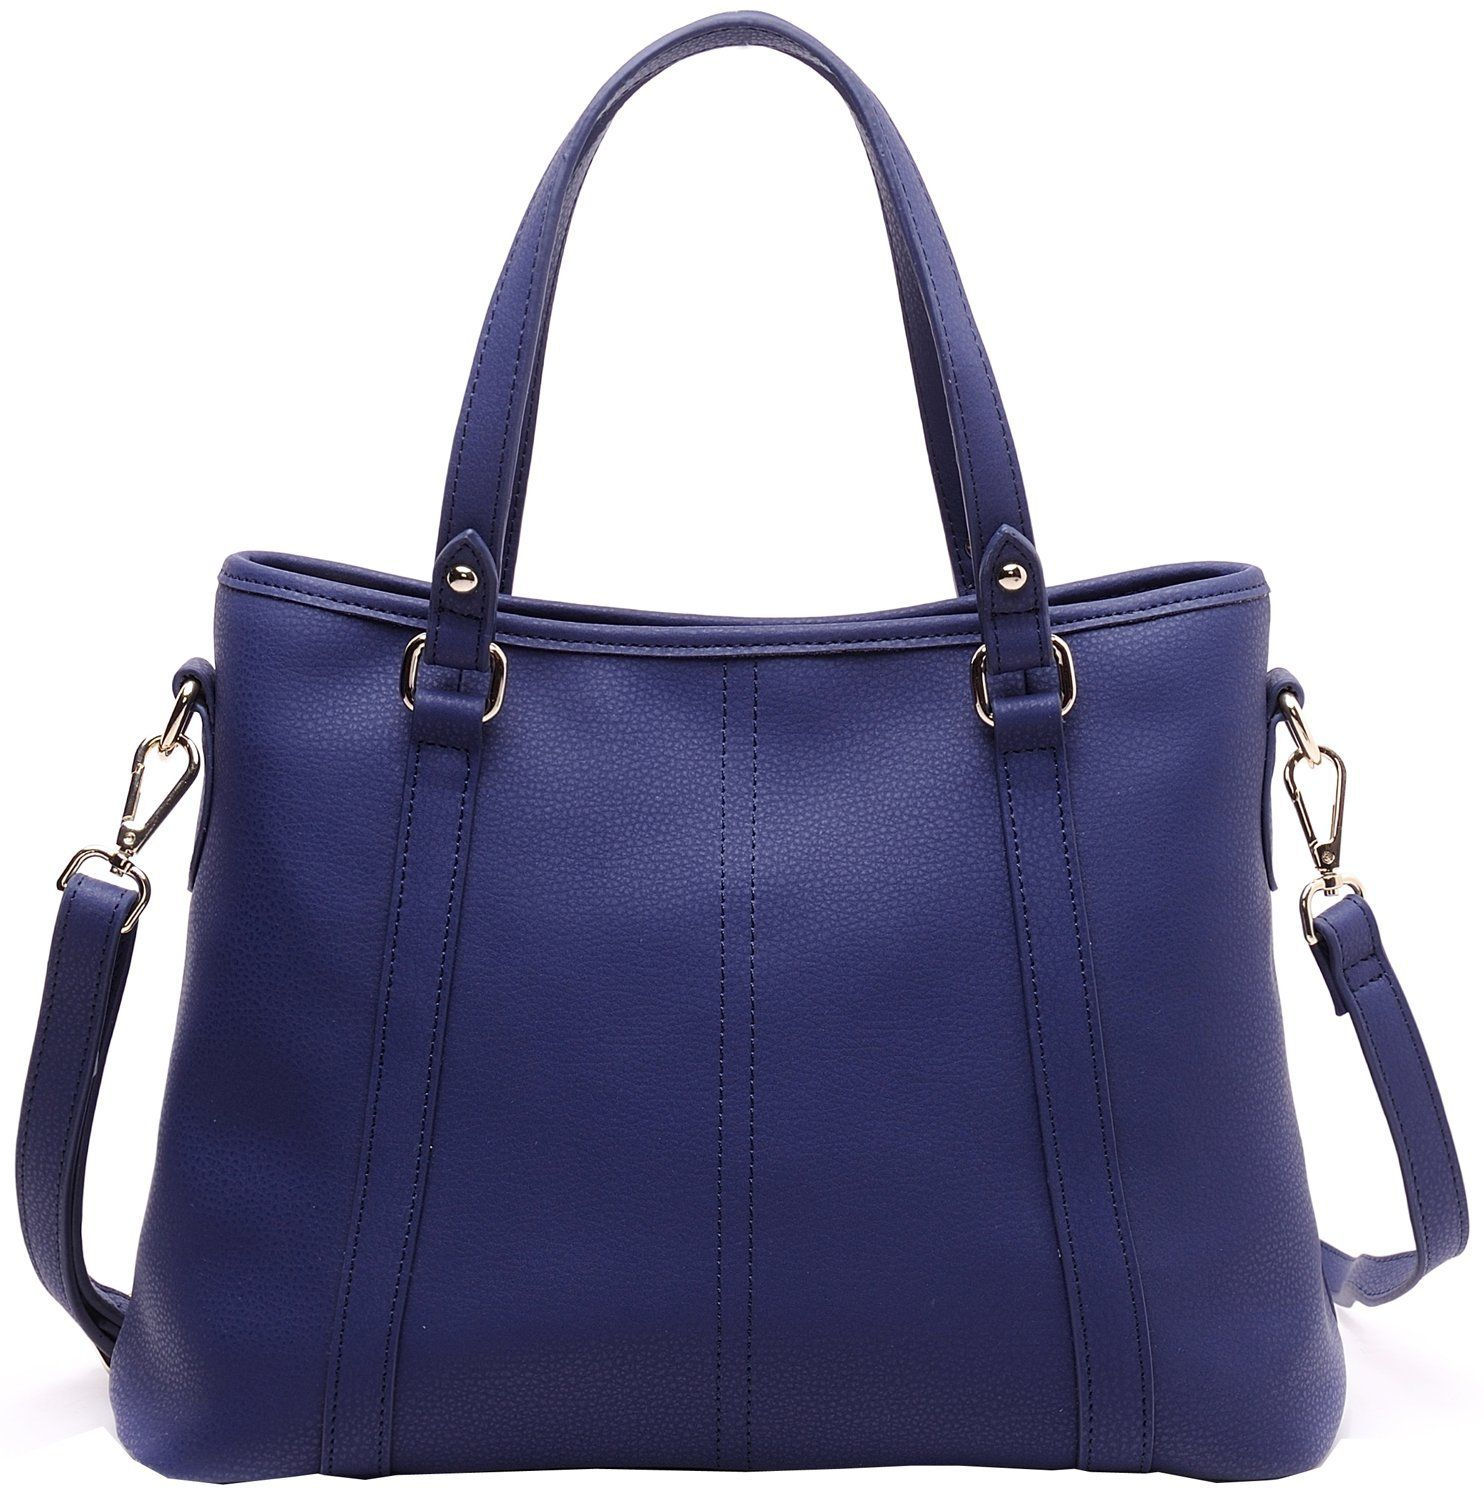 69.59 Heshe® Perfect Medium Large Multi-pocket Soft Cow Leather Shoulder Bag Cross Body Satchel Tote Top-handle Collection Handbag Messenger Bag (Navy Blue): Handbags: Amazon.com